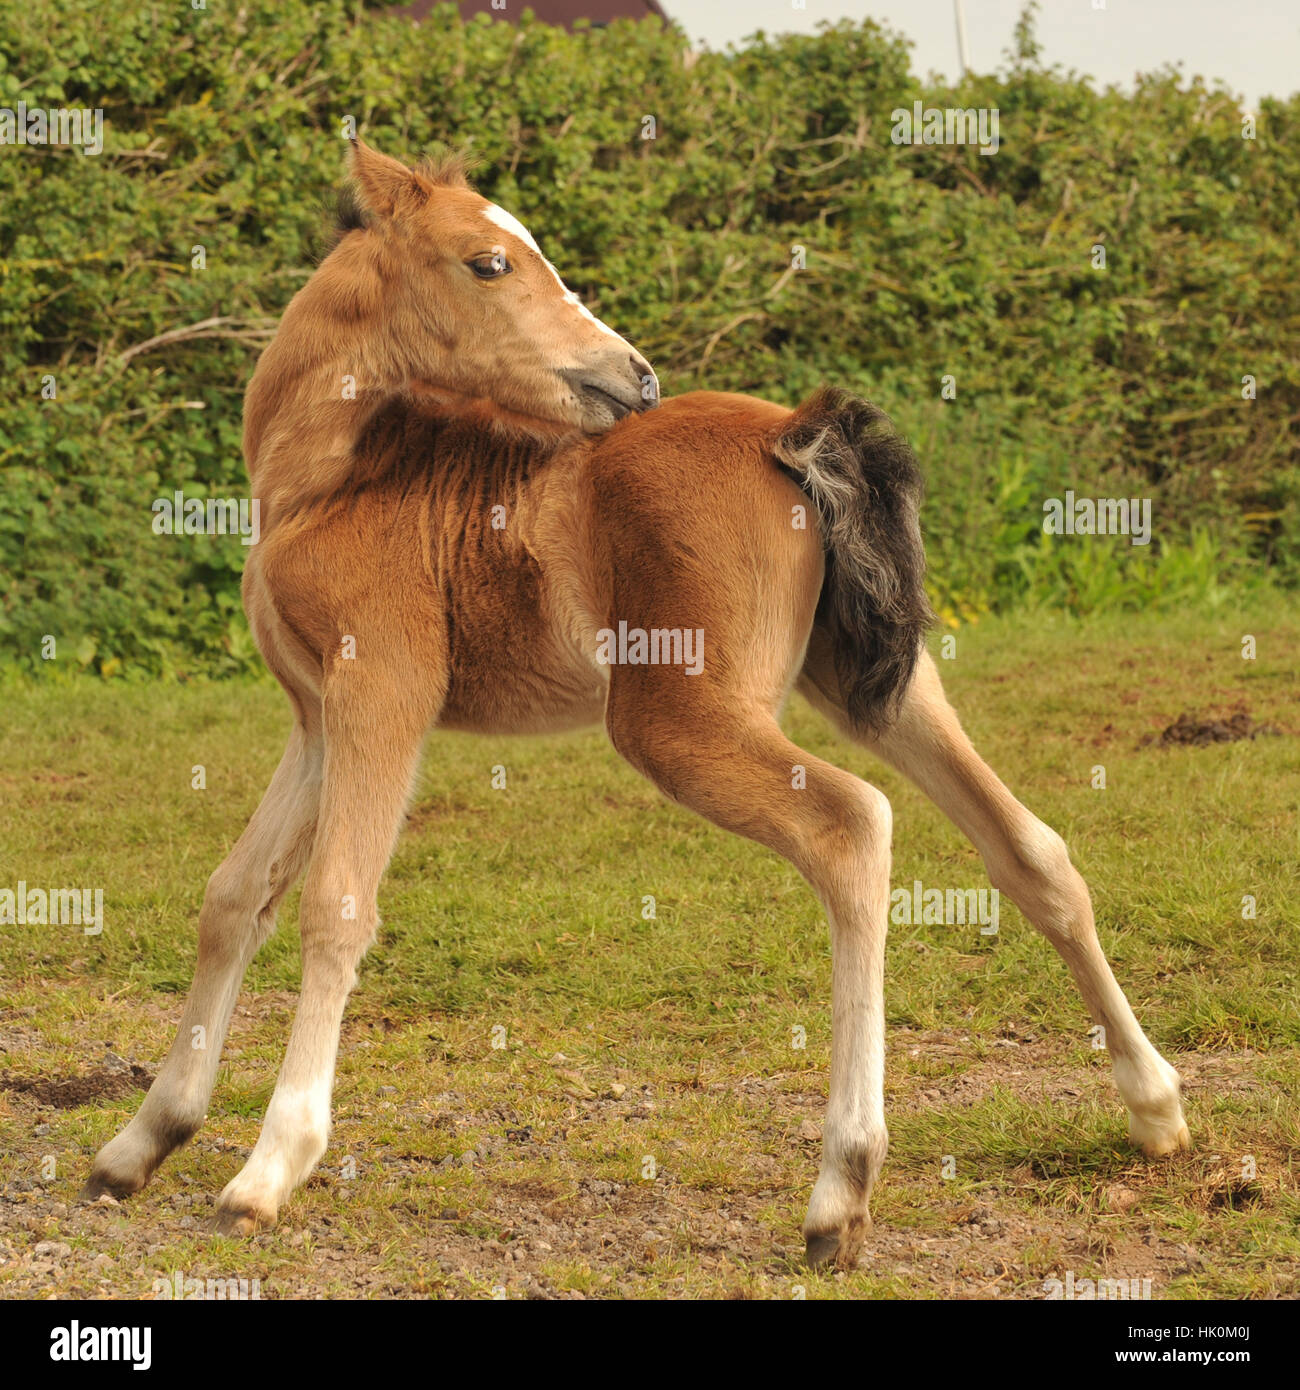 Baby Horse Cute High Resolution Stock Photography And Images Alamy